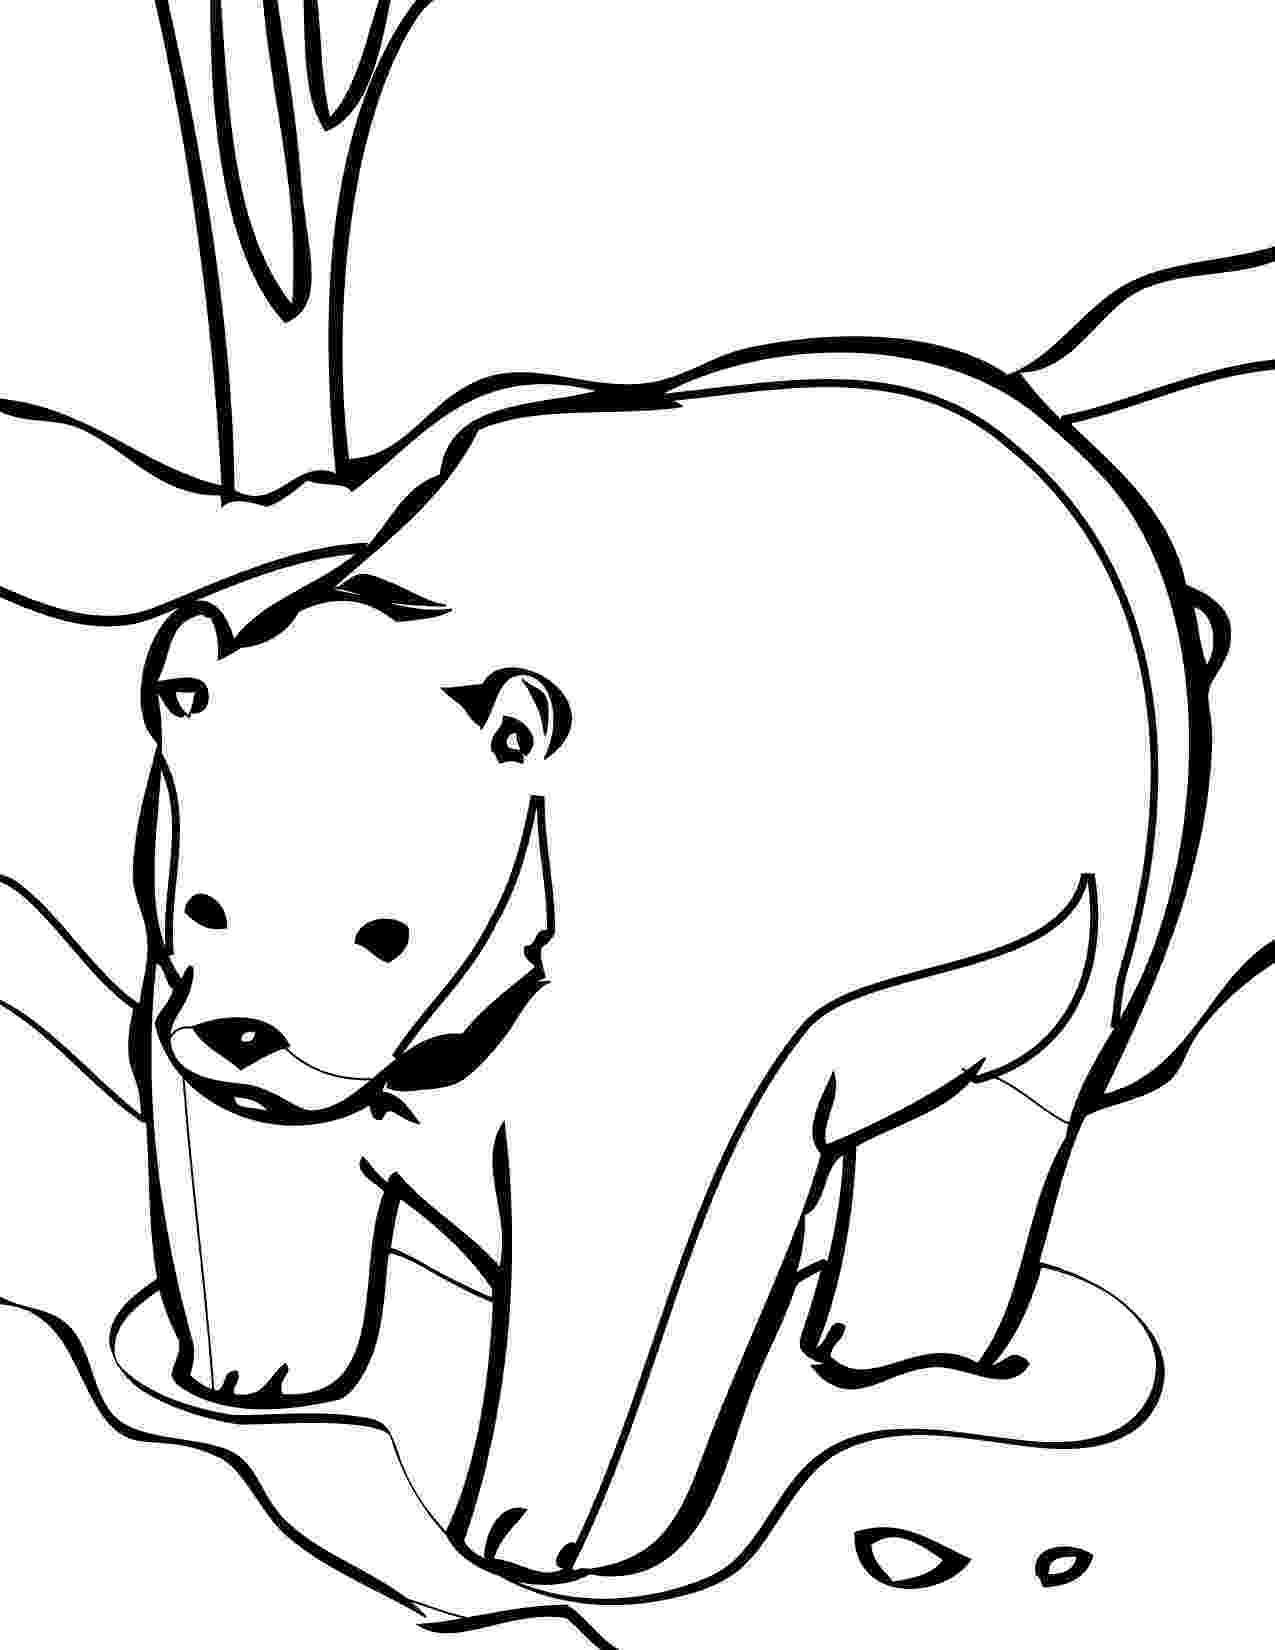 bear pictures to color bears to download bears kids coloring pages pictures color bear to